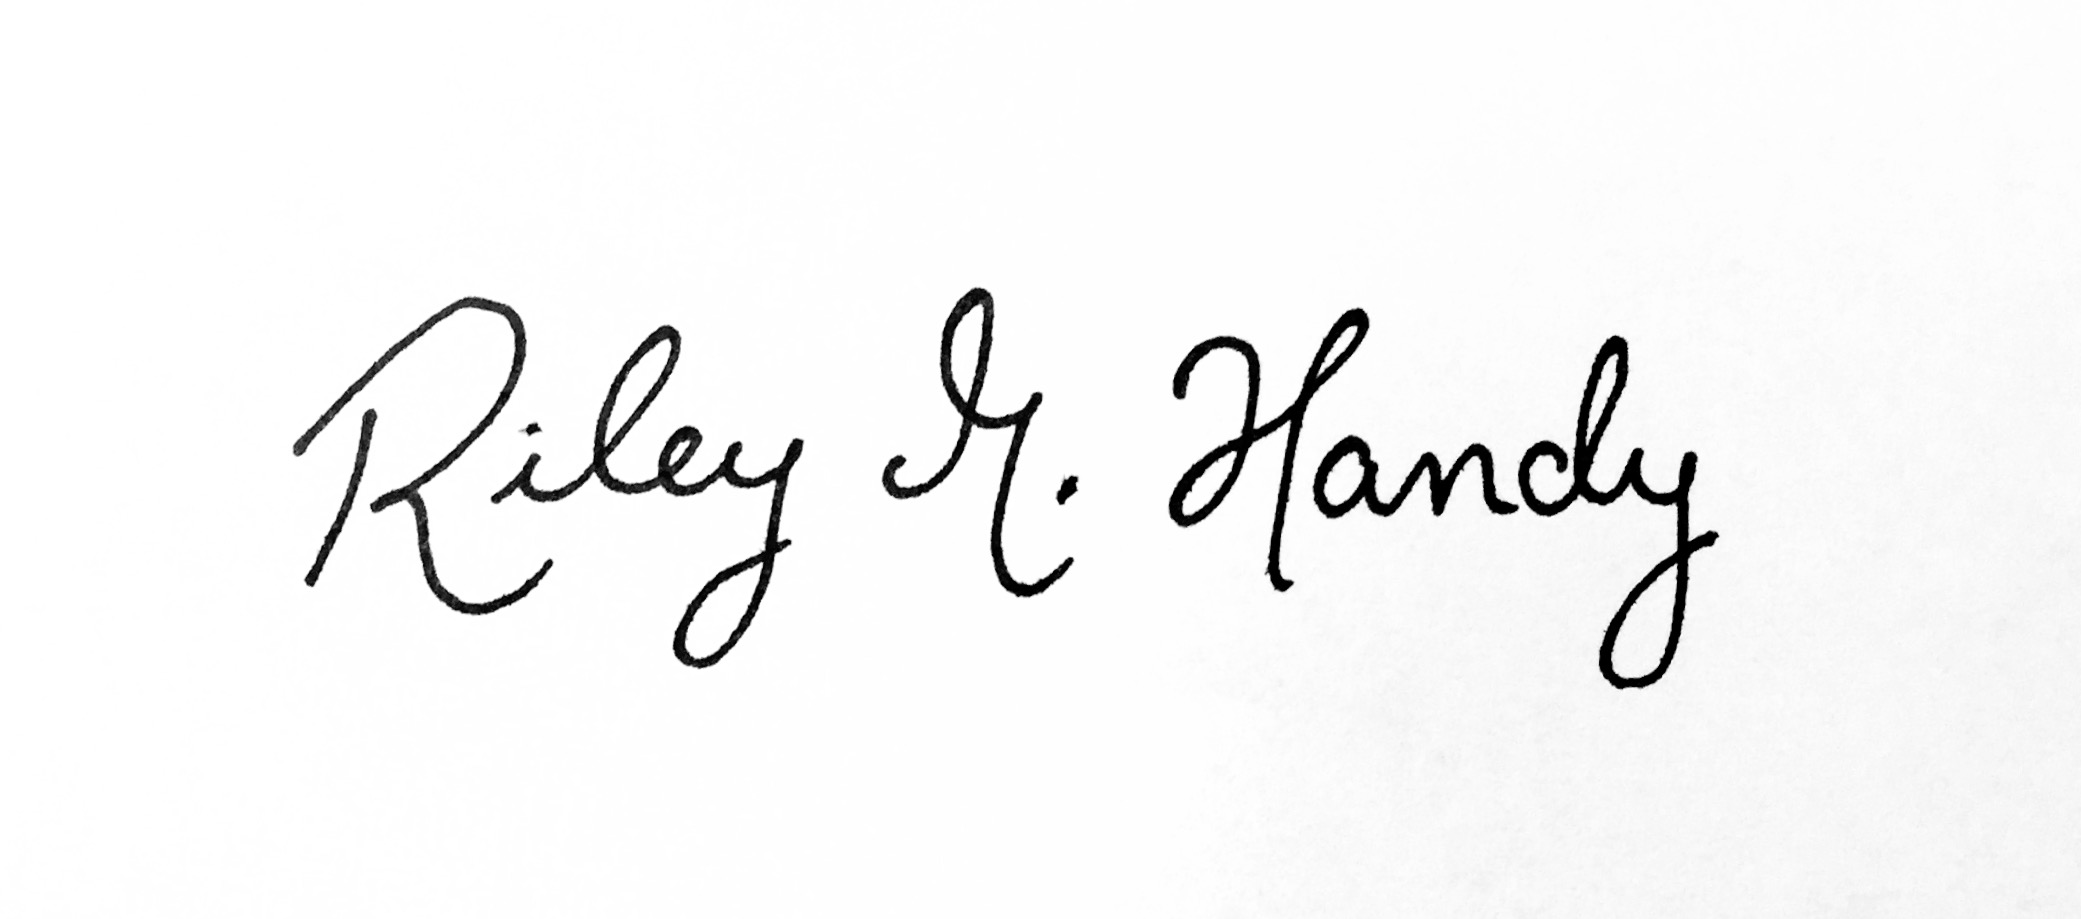 Riley marie Handy's Signature